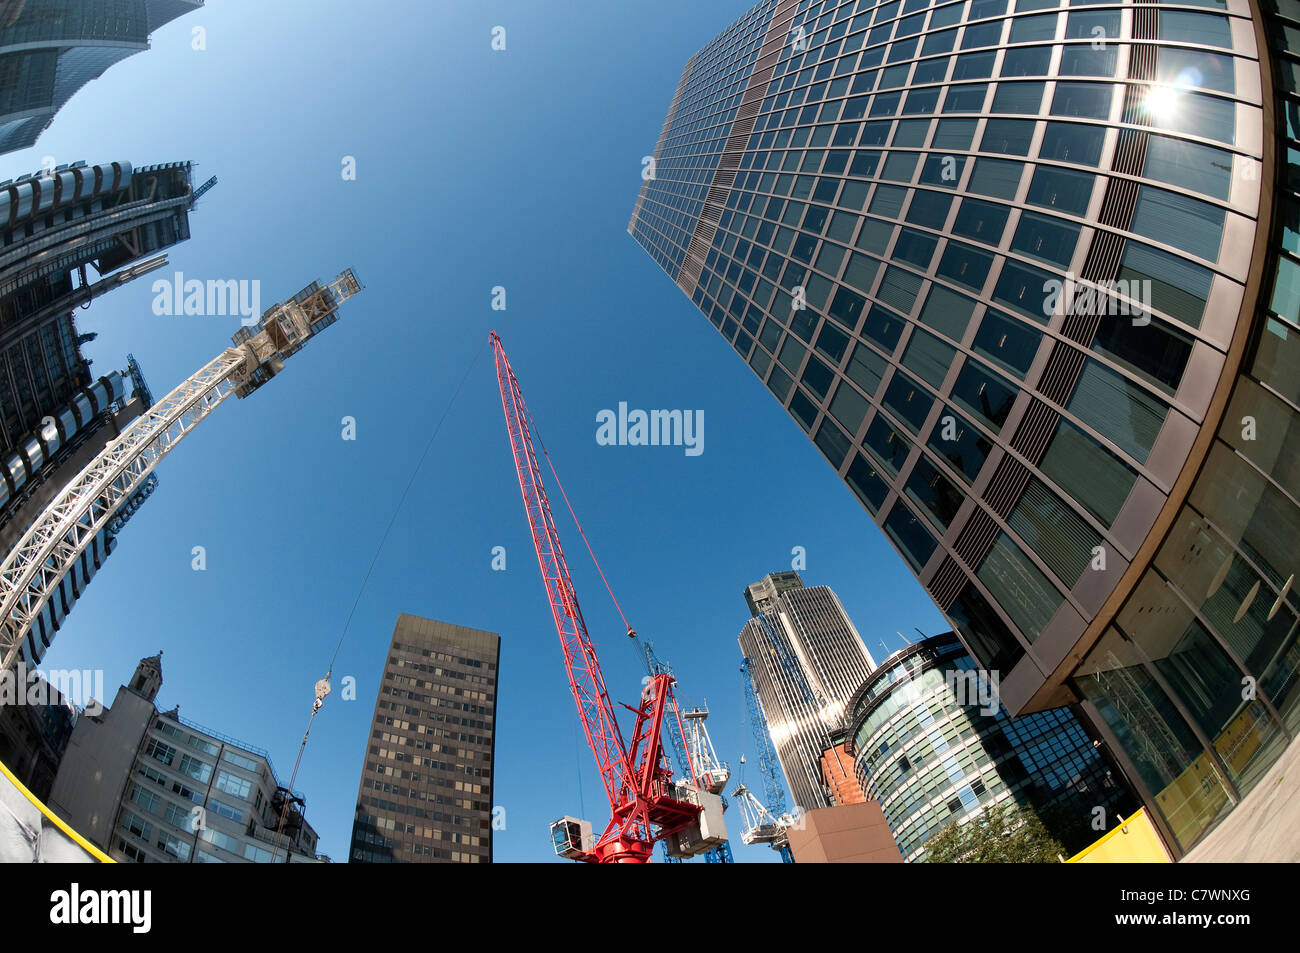 office buildings, london, england - Stock Image